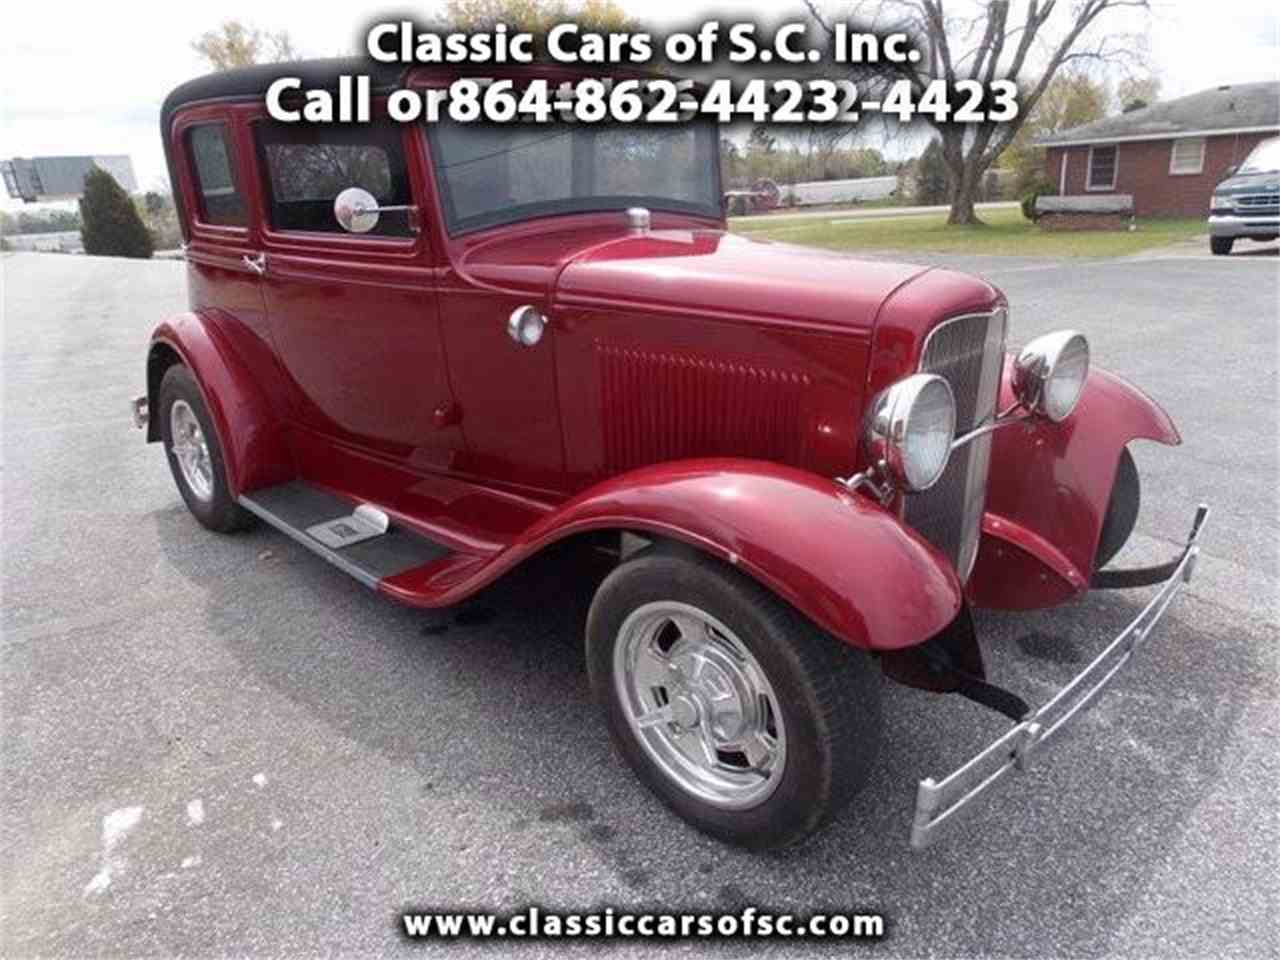 Large Picture of '31 Ford Vicky located in South Carolina - $45,000.00 - J1MX